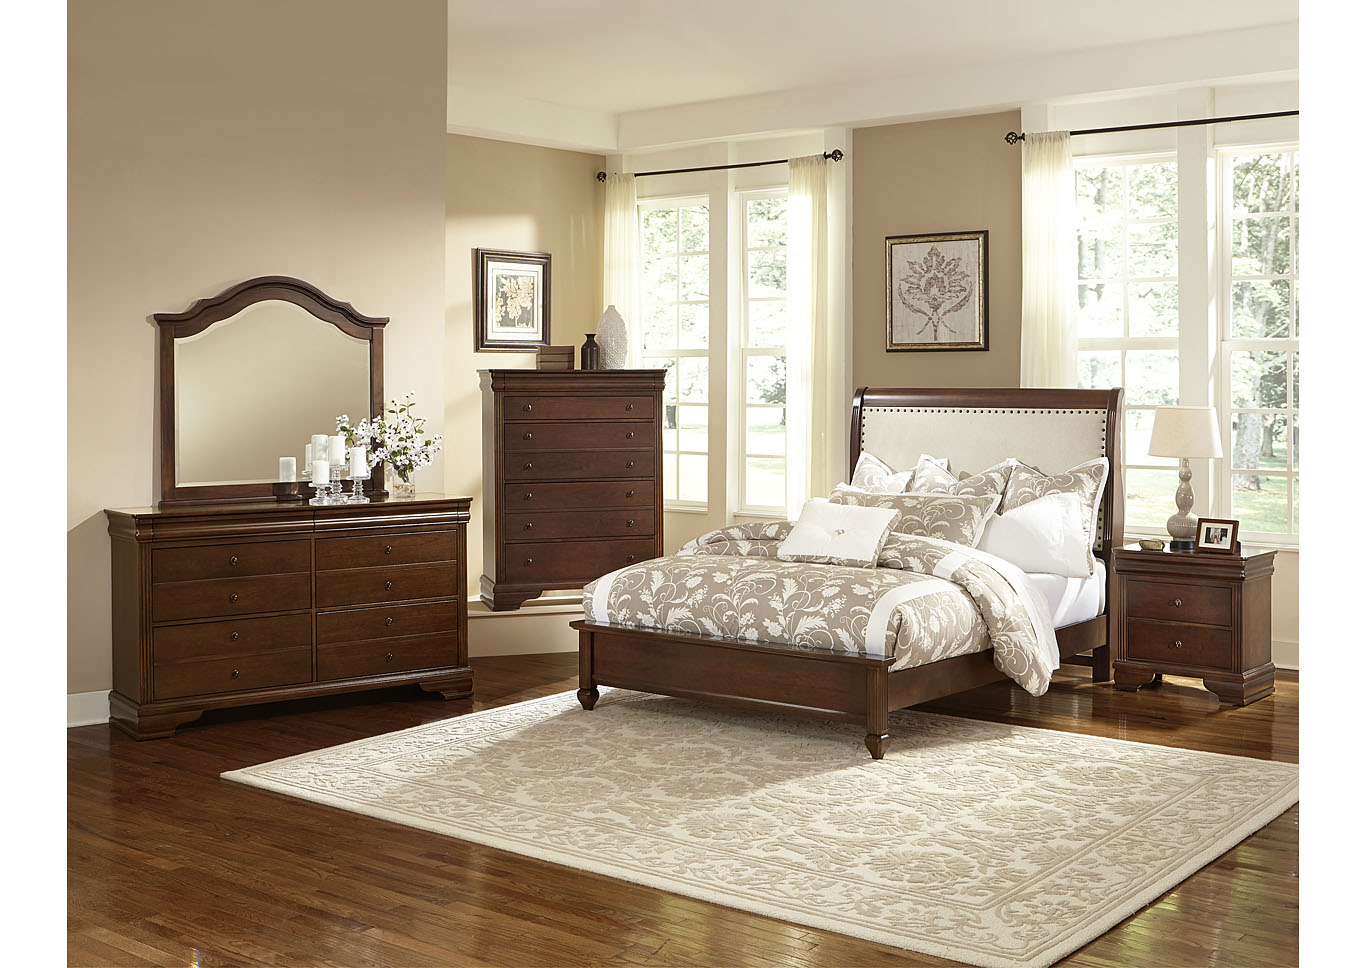 French Market French Cherry King Sleigh Bed w/ Dresser and Mirror,Vaughan-Bassett